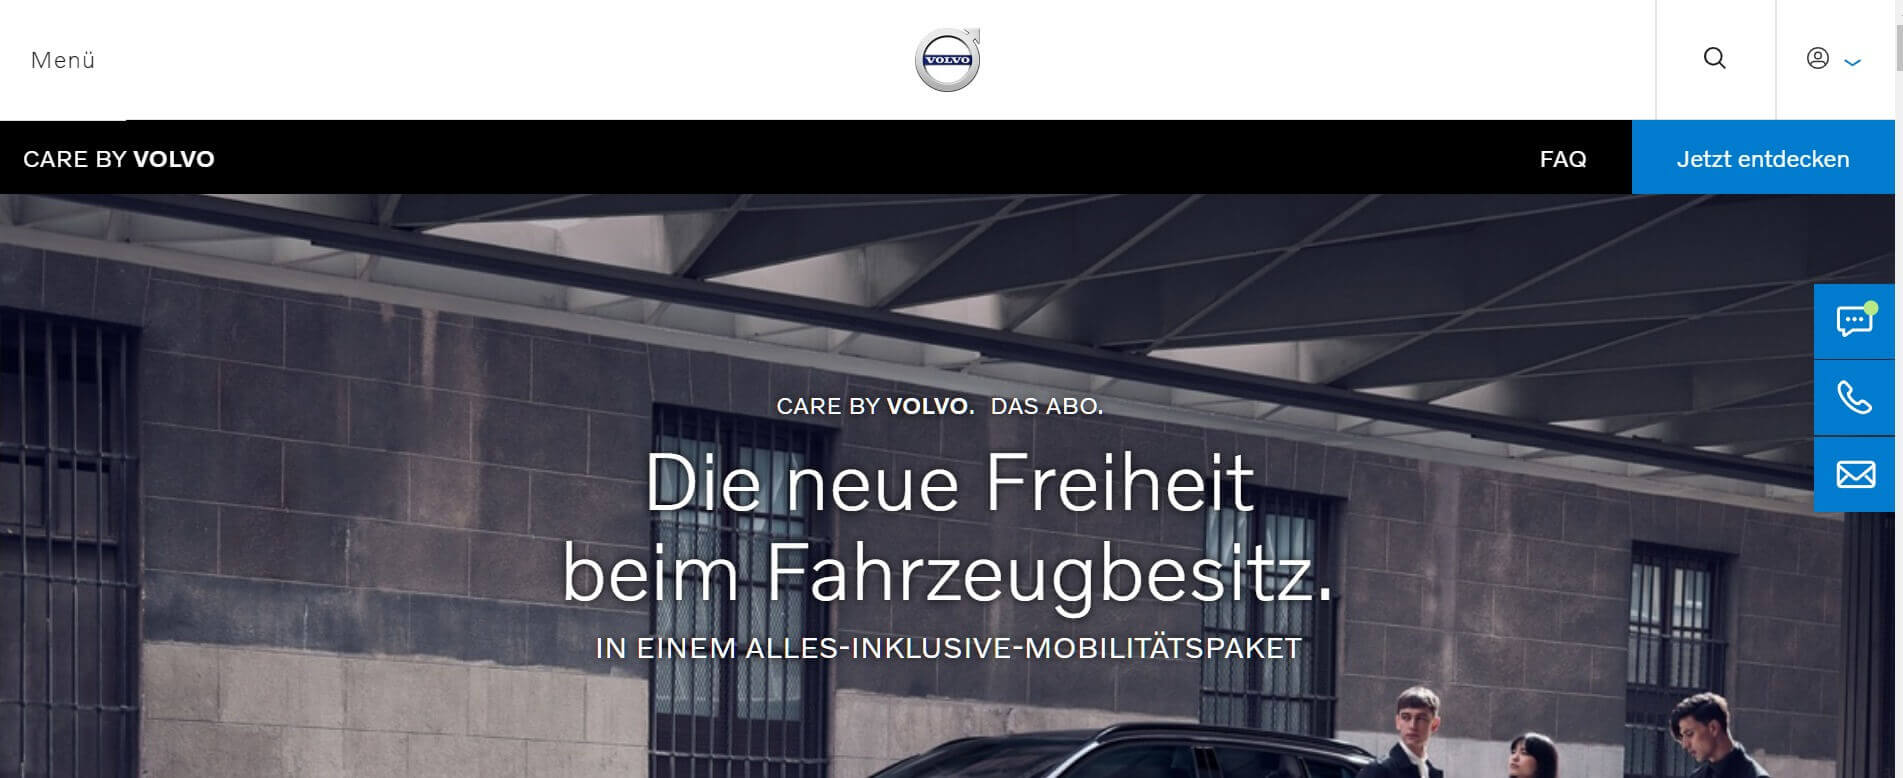 Auto Abo Care By Volvo